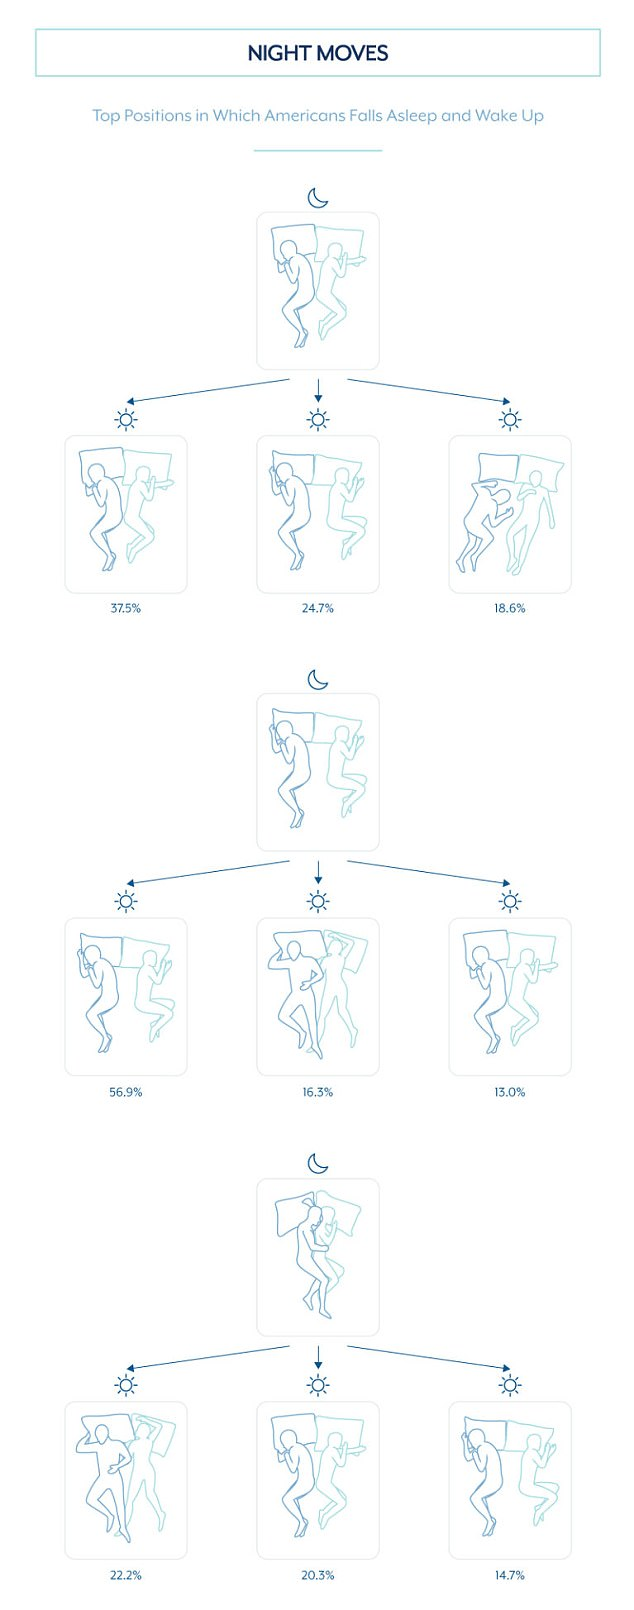 Get around: Couples sleeping back-to-back were least likely to change position in the night according to this night-moves diagram